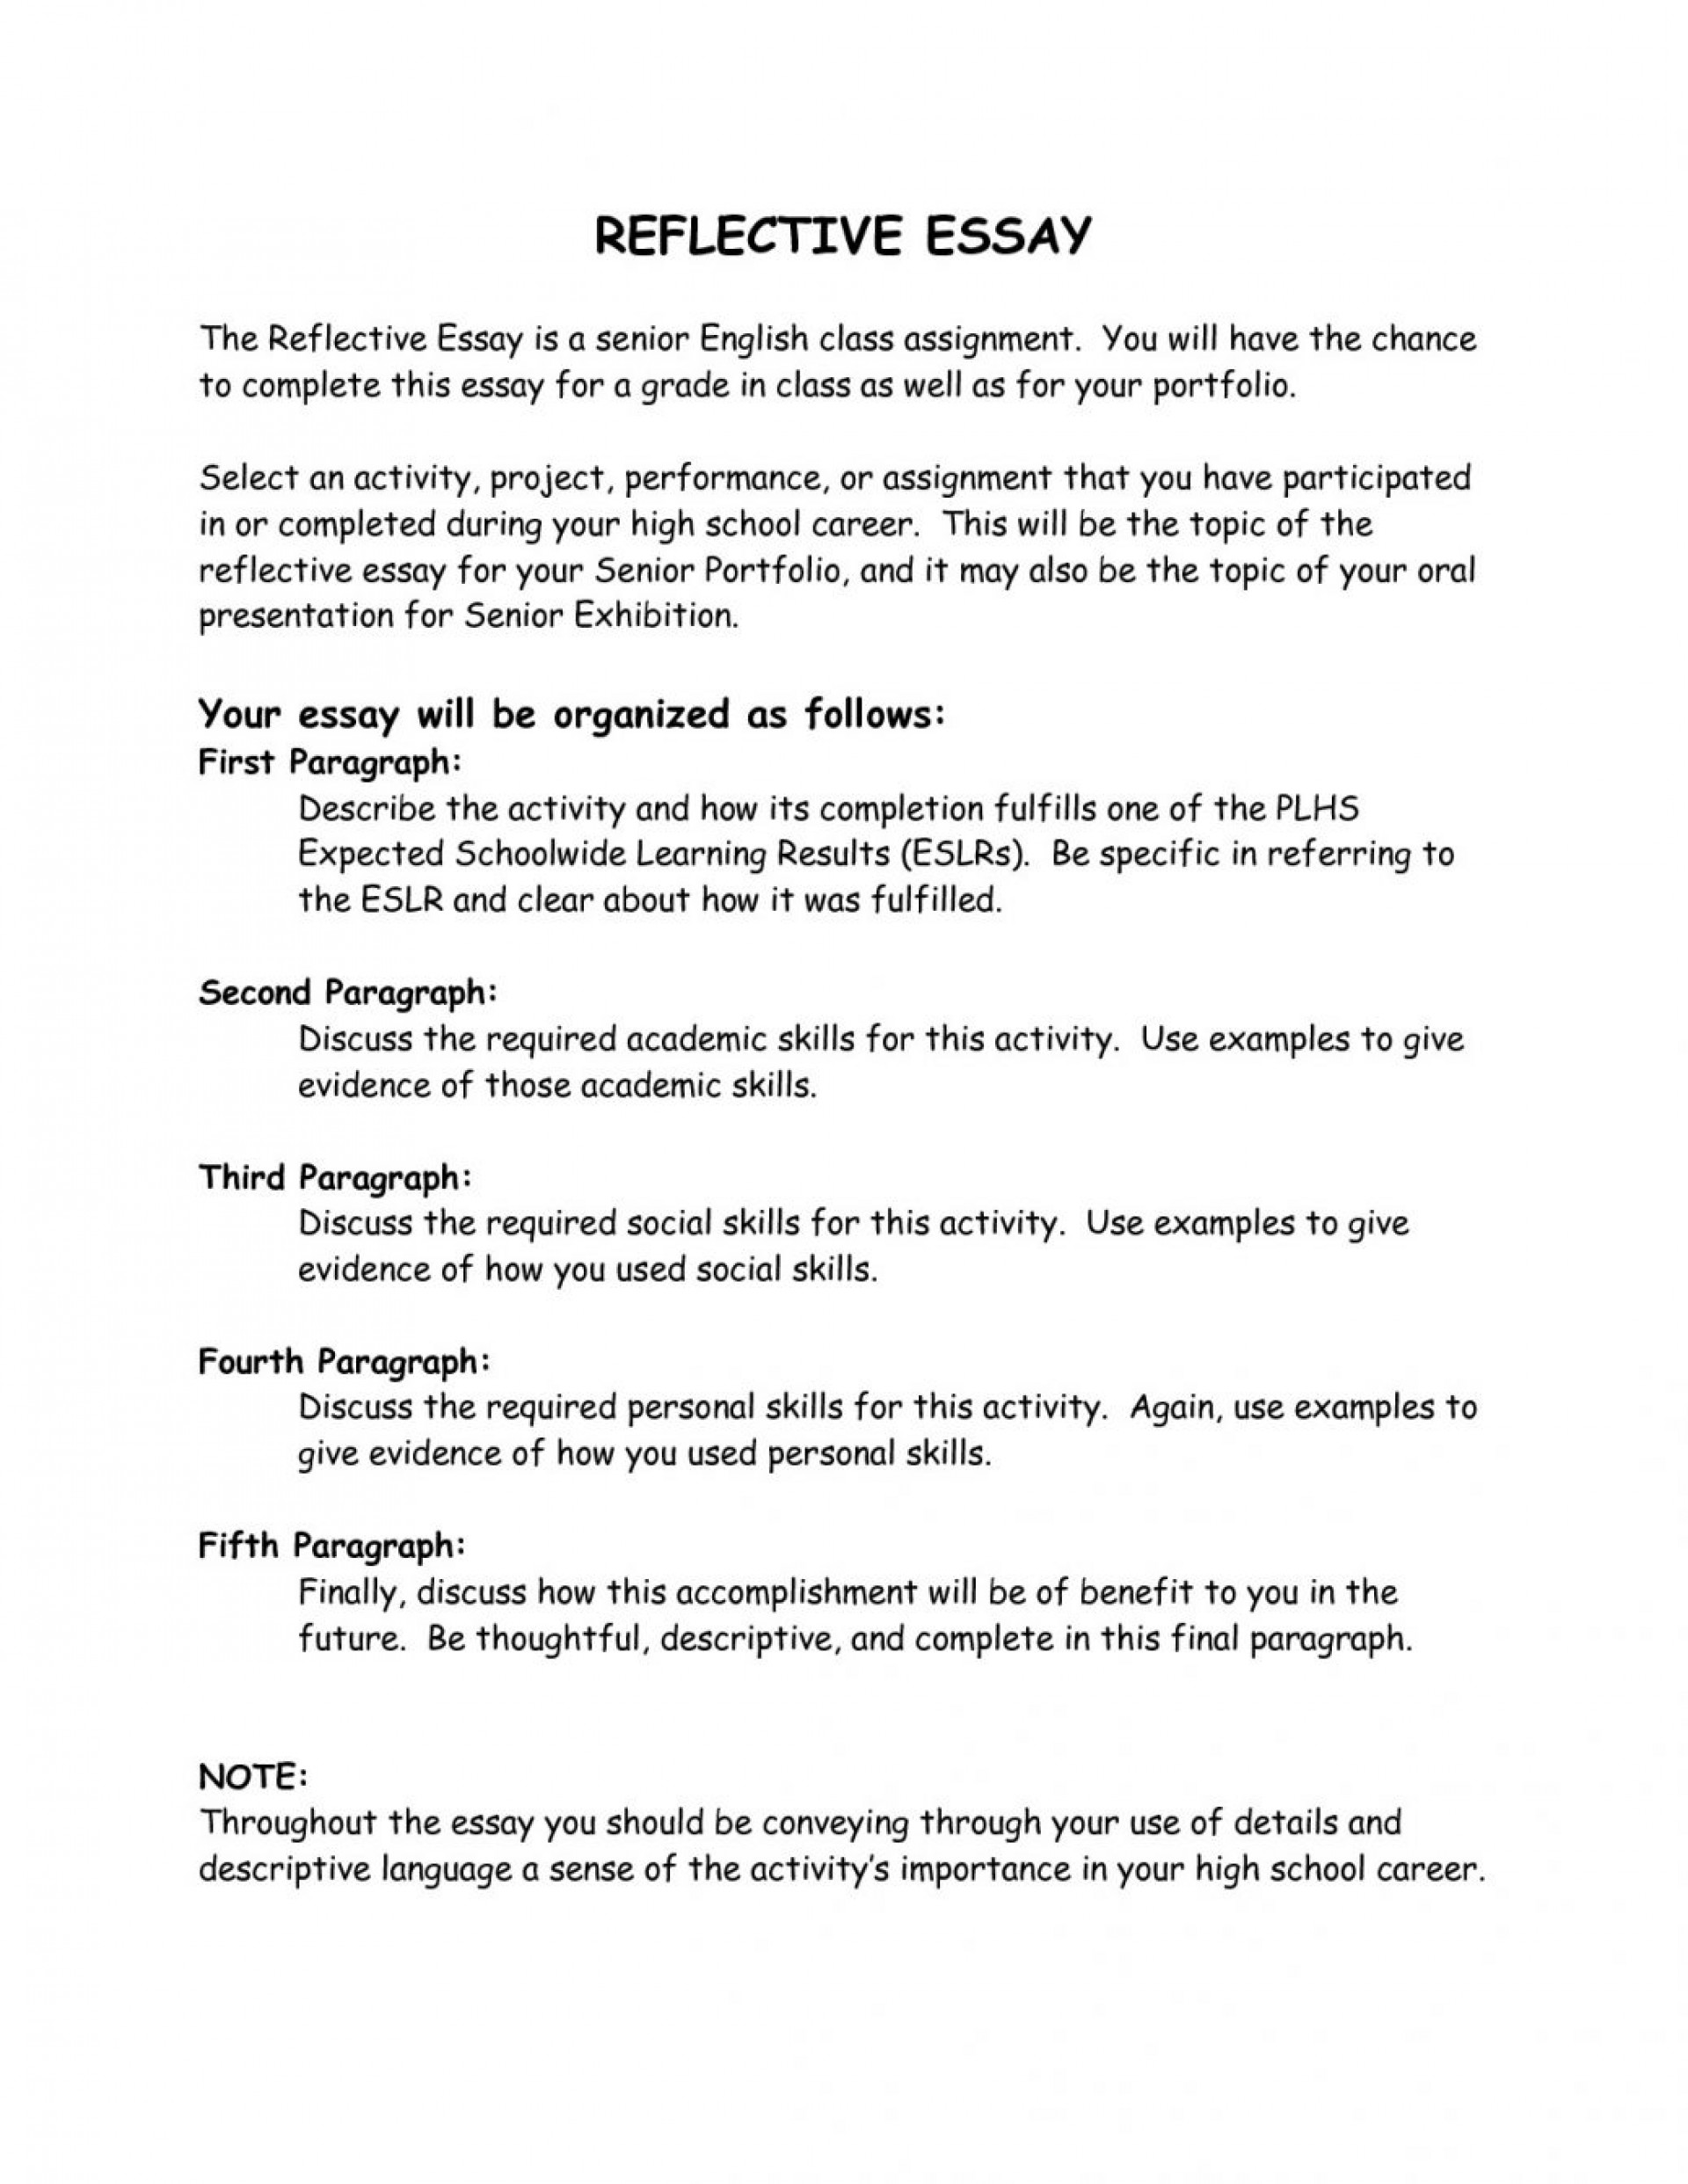 022 Paragraph Development Examples Essay Template Staggering Image Ideas Developing Thesis High School Researchr Writing Service Awesome 1038x1343 Cool Topics To Do On Impressive A Research Paper Interesting For Medical Of In Computer Science Economic 1920